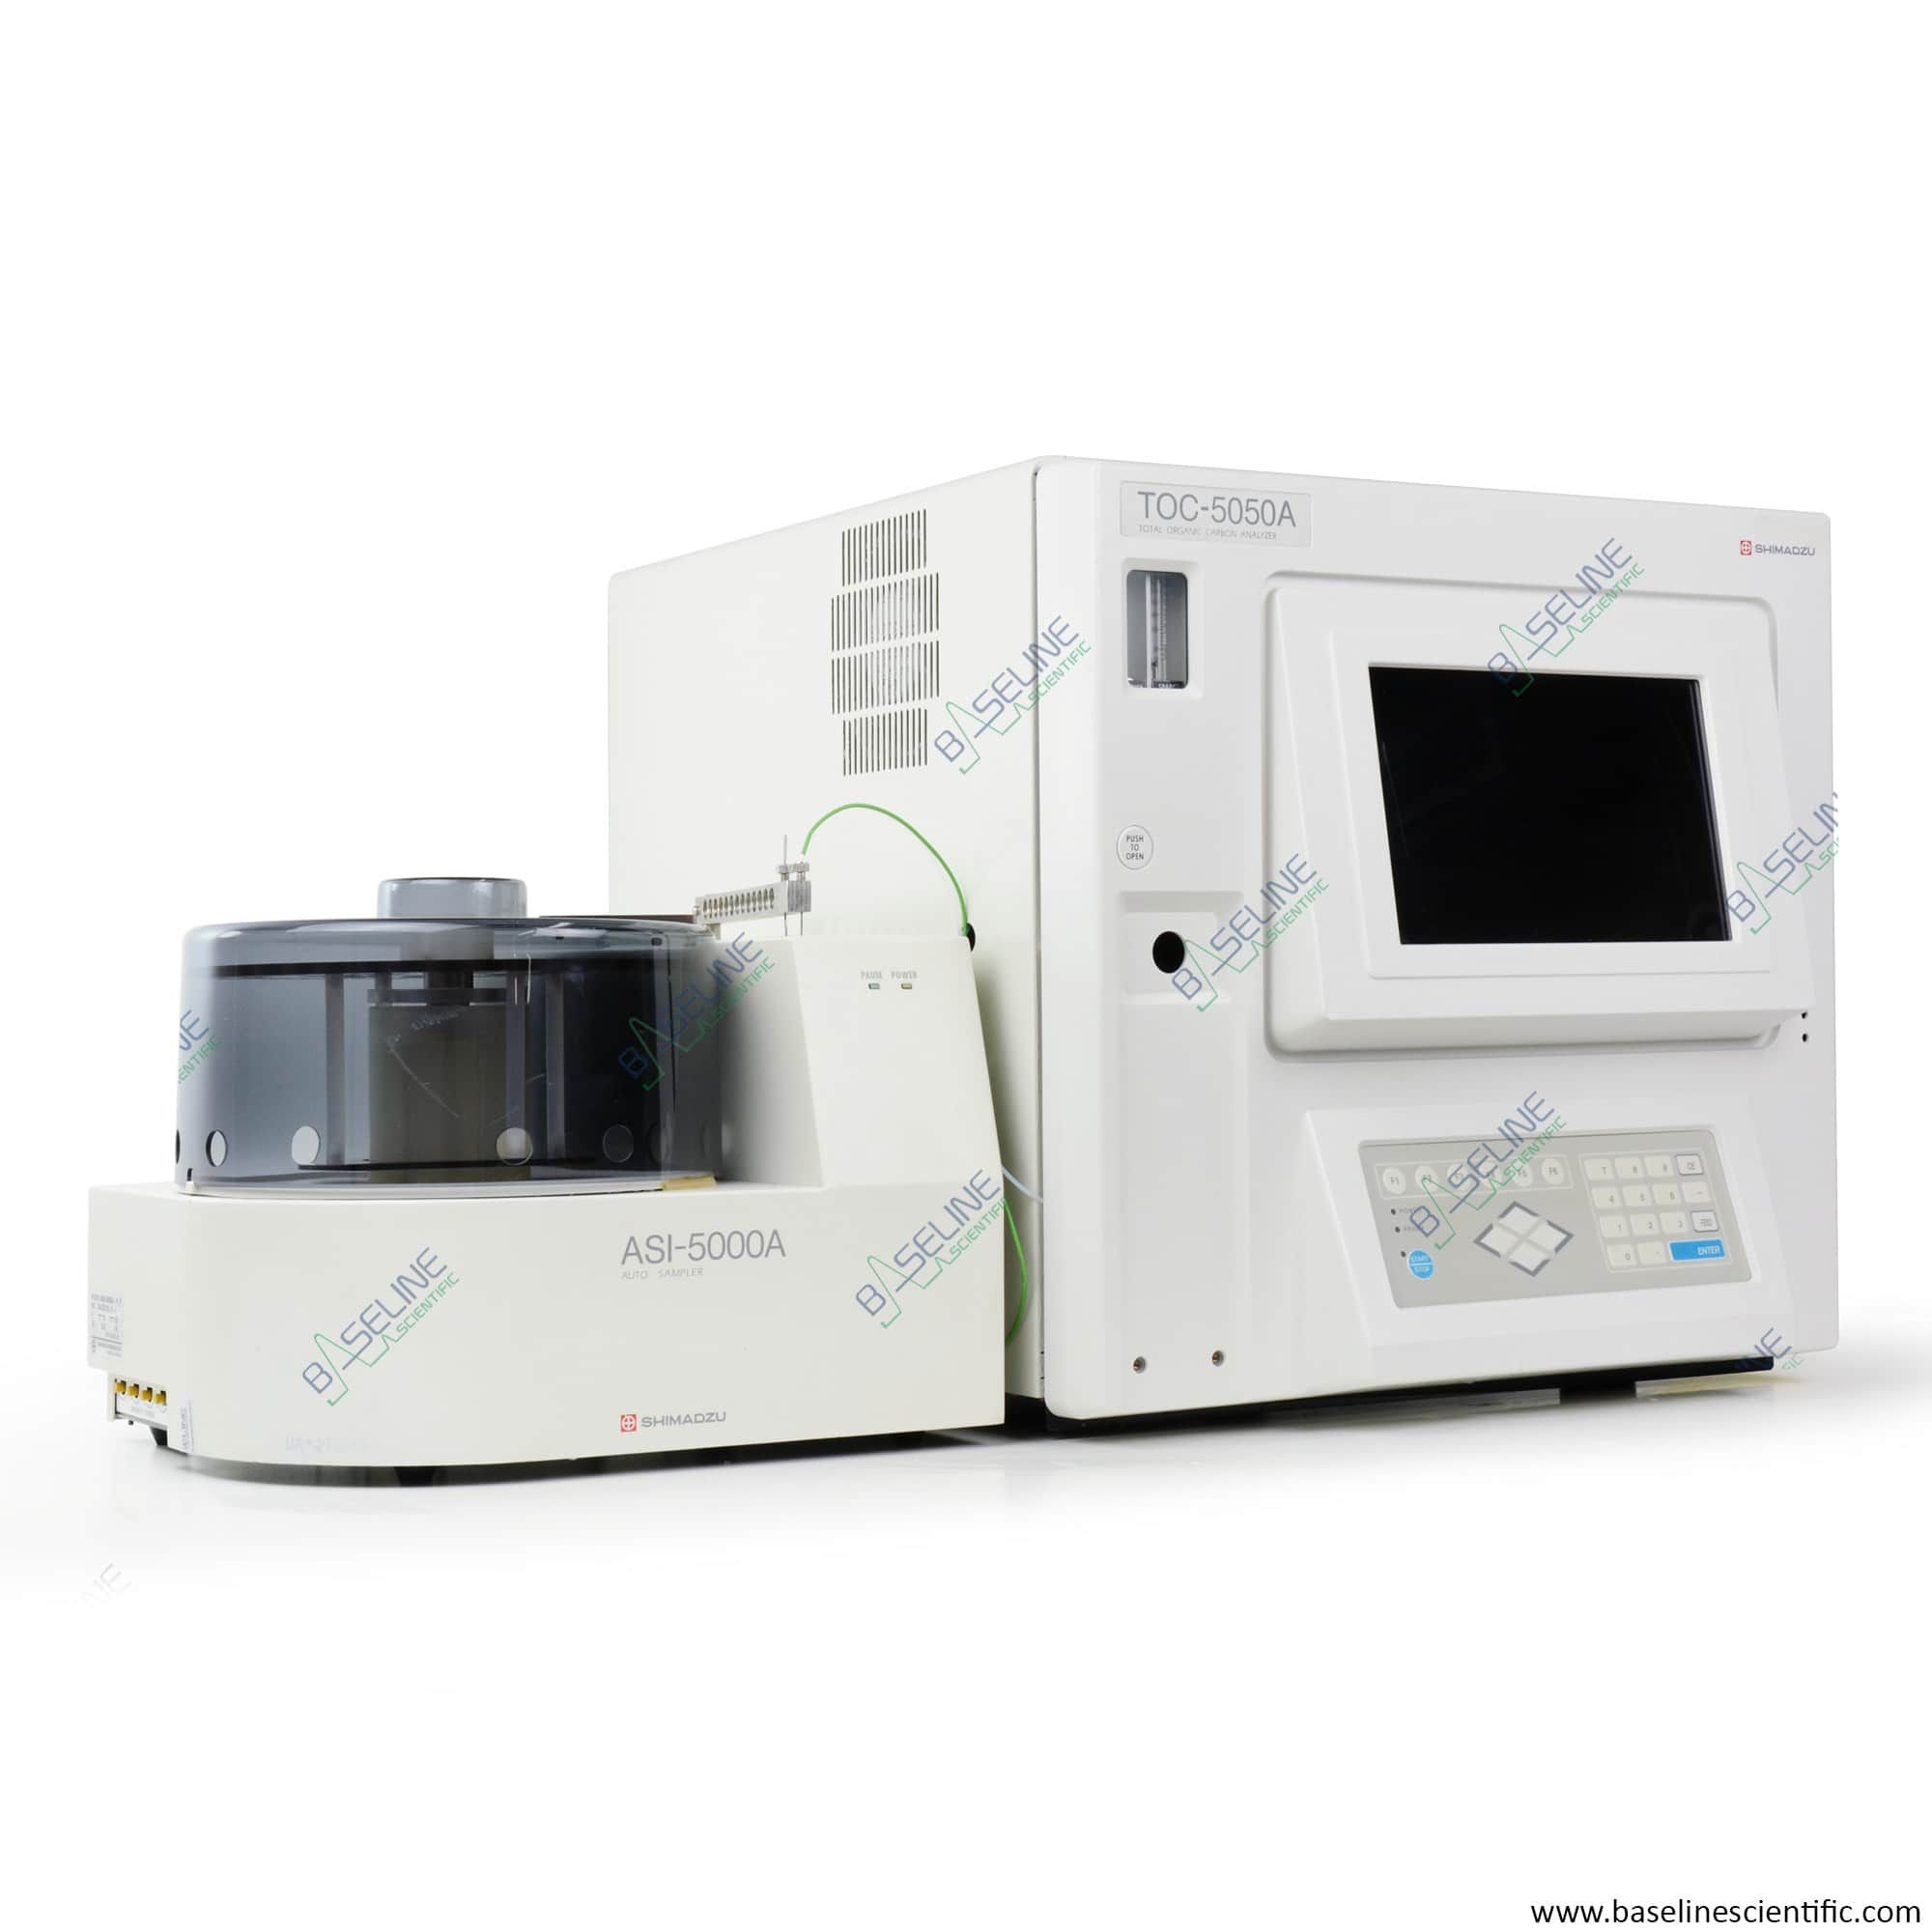 Refurbished Shimadzu TOC-5050A with ASI-5000A Autosampler and Control Software